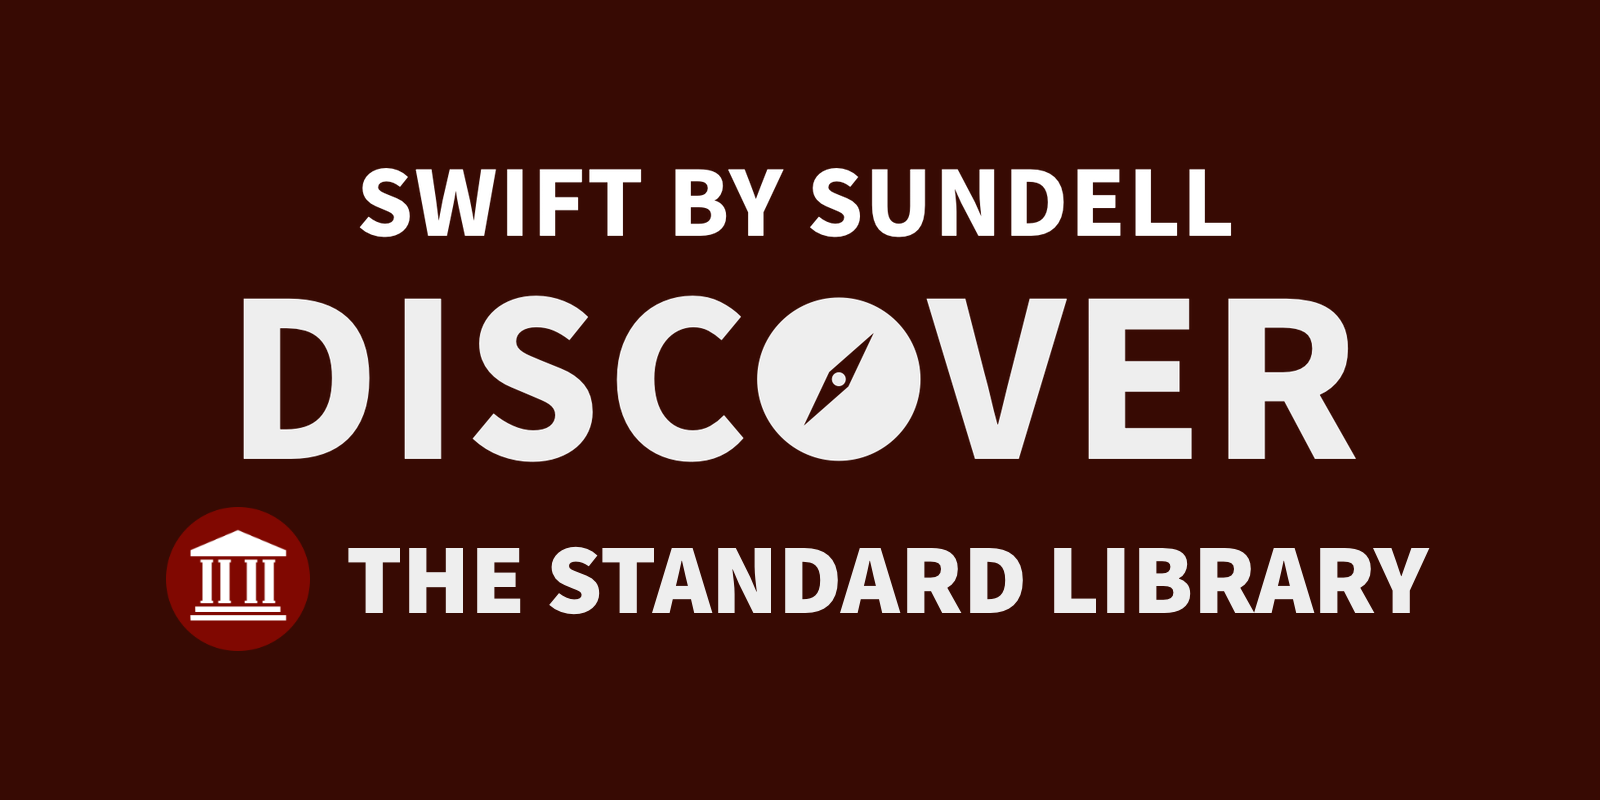 Discover The Standard Library on Swift by Sundell